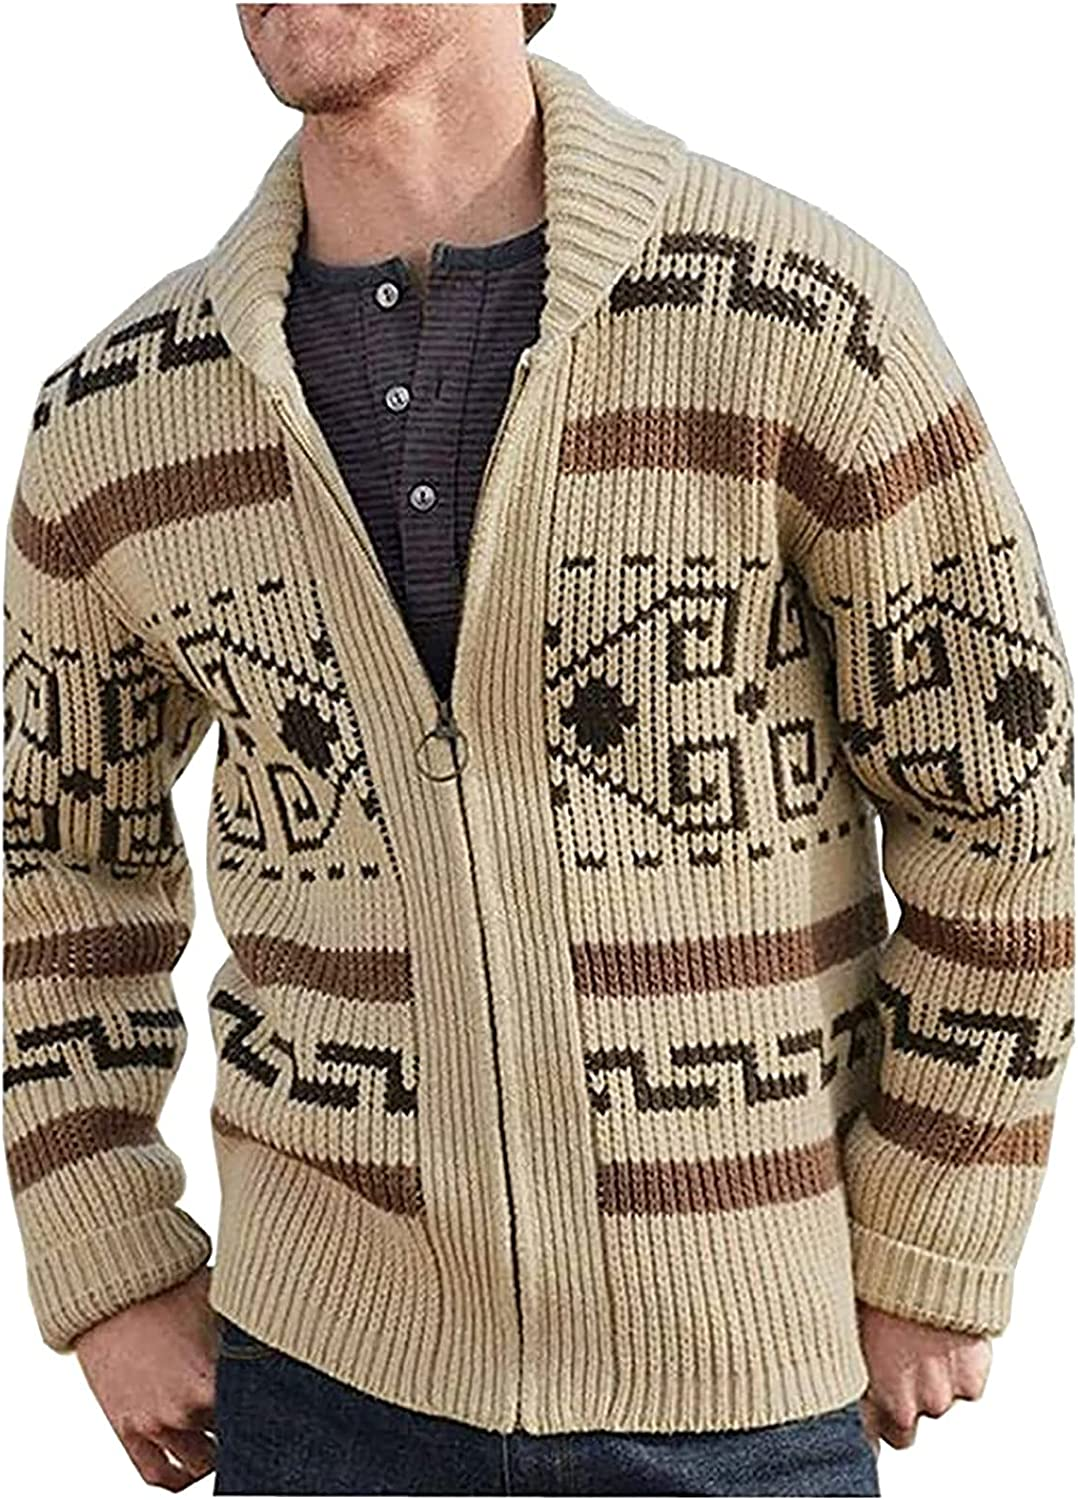 XXBR Sweater Jackets for Mens, Lapel Zipper Knit Cardigan Sweaters Boho Jacquard Printed Vintage Casual Fashion Outwear